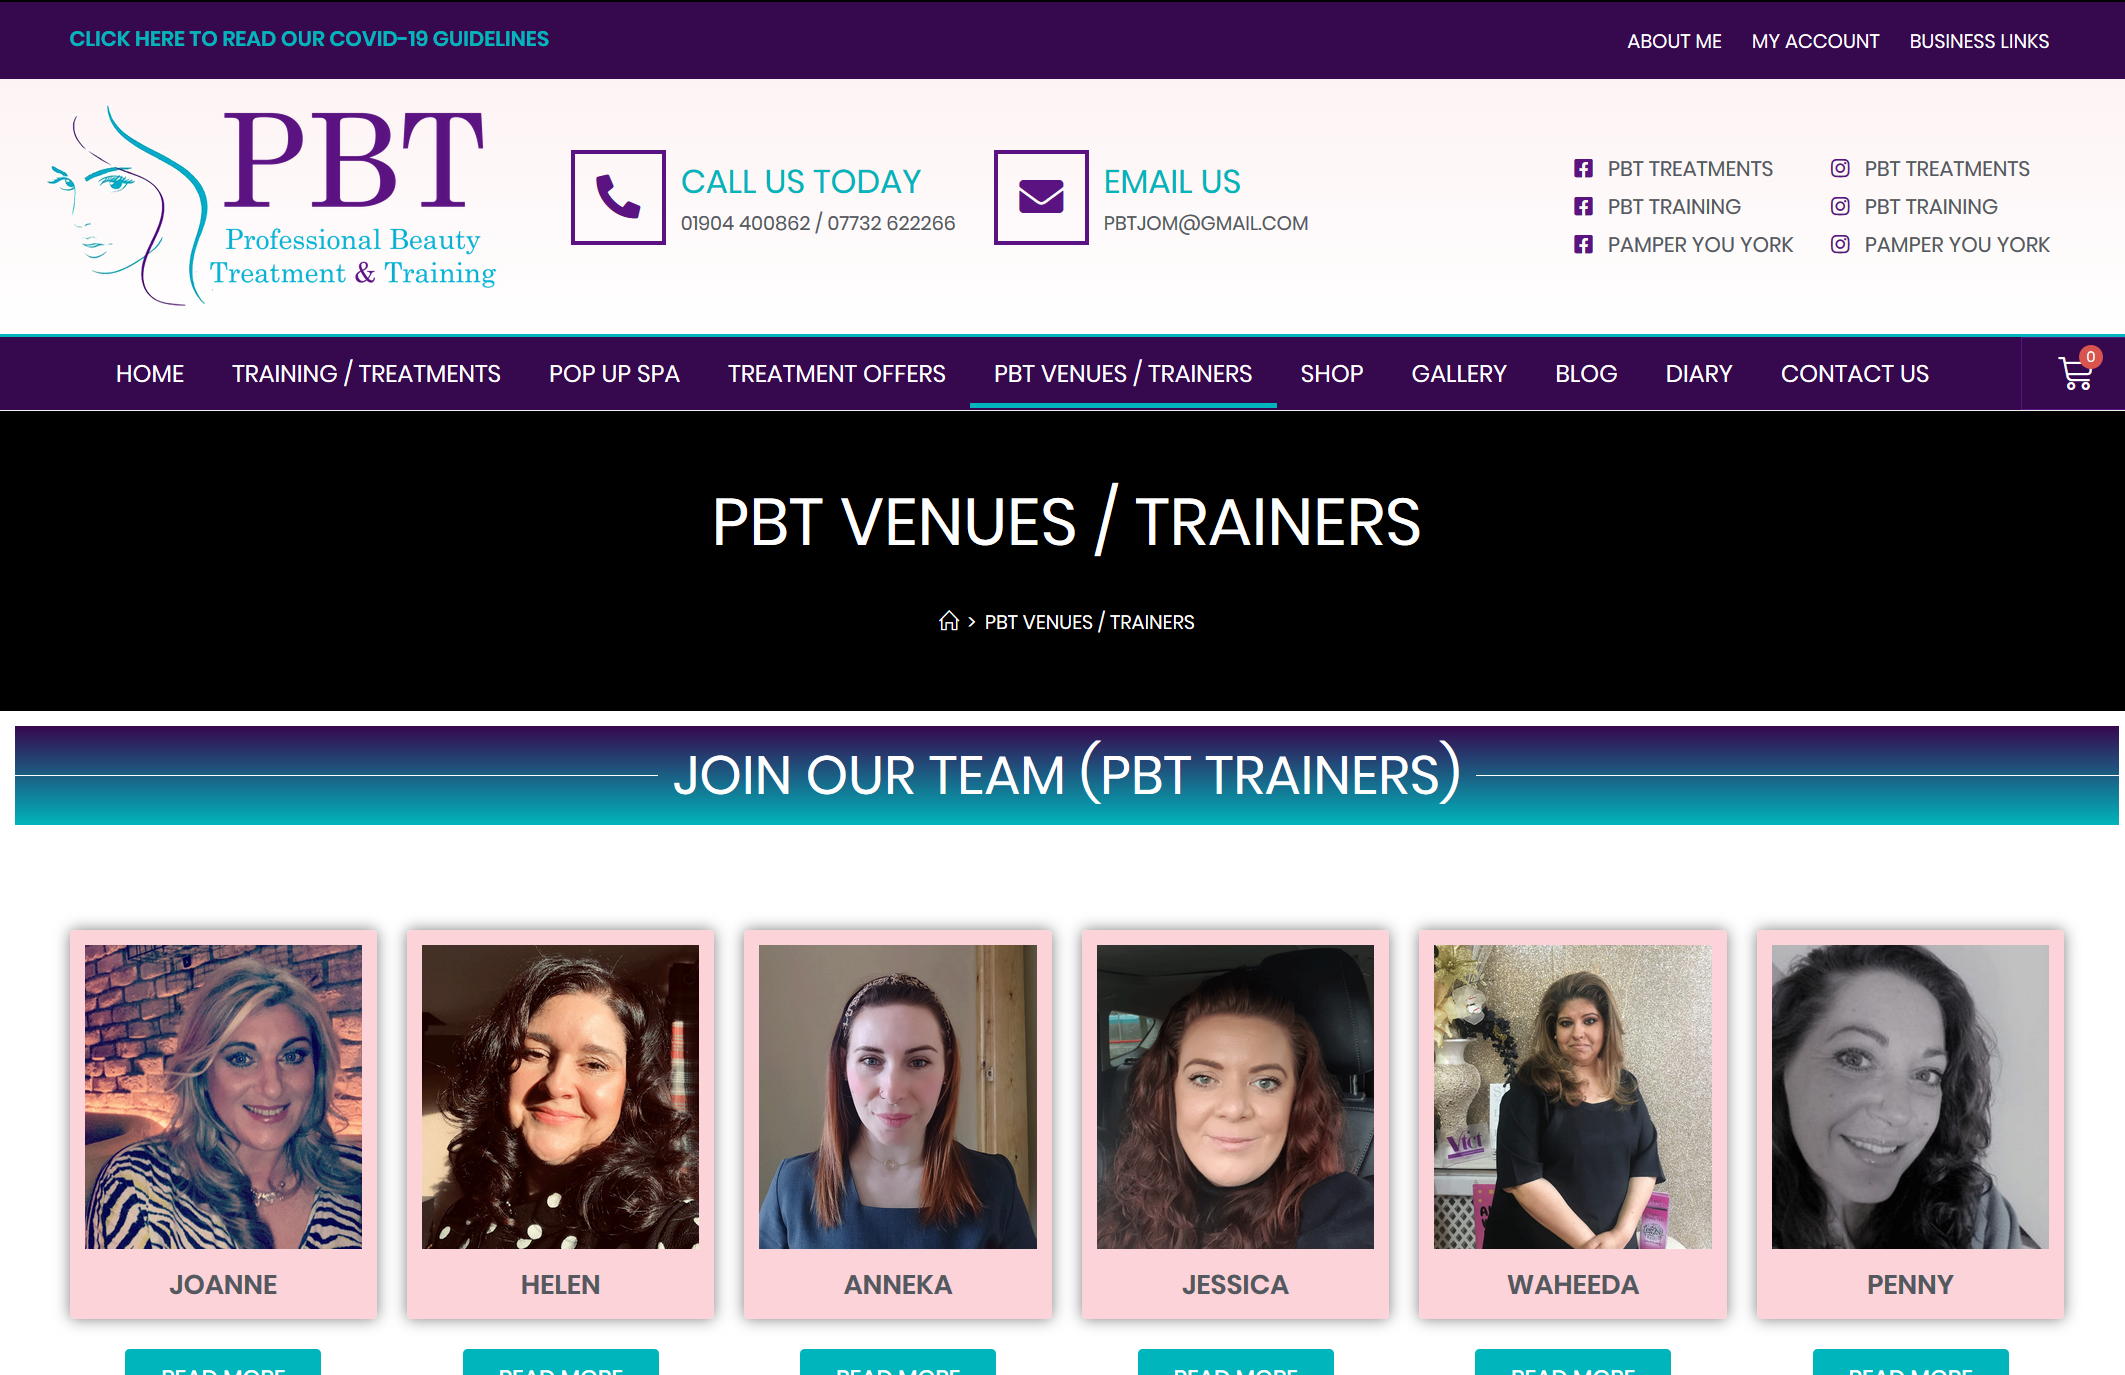 PBT TRAINERS